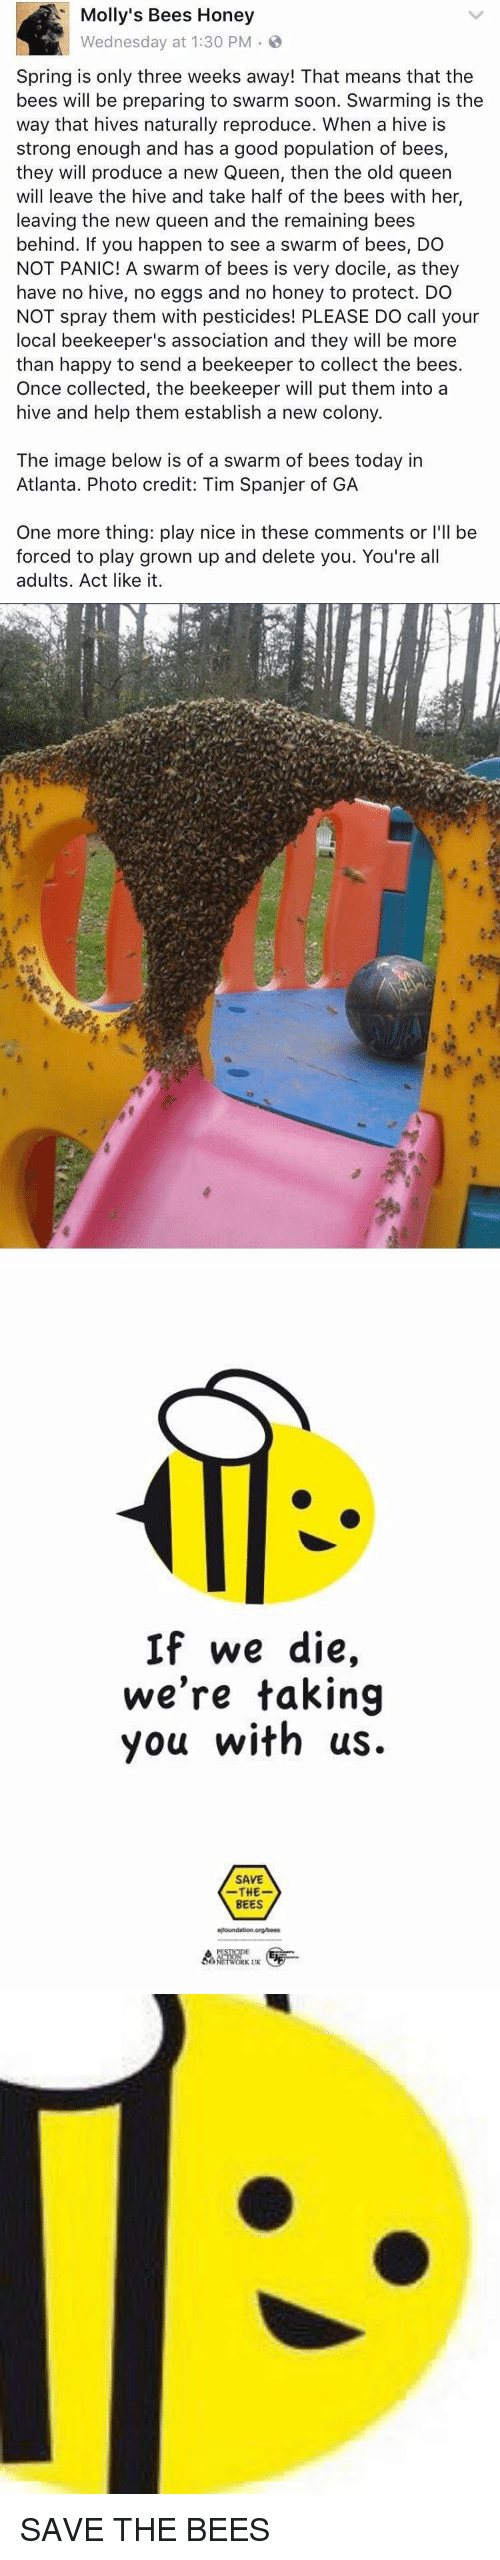 """Girl Memes, Collective, and Act: Molly's Bees Honey  Wednesday at 1:30 PM  Spring is only three weeks away! That means that the  bees will be preparing to swarm soon. Swarming is the  way that hives naturally reproduce. When a hive is  strong enough and has a good population of bees,  they will produce a new Queen, then the old queen  will leave the hive and take half of the bees with her  leaving the new queen and the remaining bees  behind. If you happen to see a swarm of bees, DO  NOT PANIC! A swarm of bees is very docile, as they  have no hive, no eggs and no honey to protect  DO  NOT spray them with pesticides! PLEASE DO call your  local beekeeper's association and they will be more  than happy to send a beekeeper to collect the bees  Once collected, the beekeeper will put them into a  hive and help them establish a new colony  The image below is of a swarm of bees today in  Atlanta. Photo credit: Tim Spanjer of GA  One more thing: play nice in these comments or l'll be  forced to play grown up and delete you. You're all  adults. Act like it   筍  > es""""おや  k@  H:  as   If we die,  we're taking  you with us.  SAVE  THE  BEES SAVE THE BEES"""